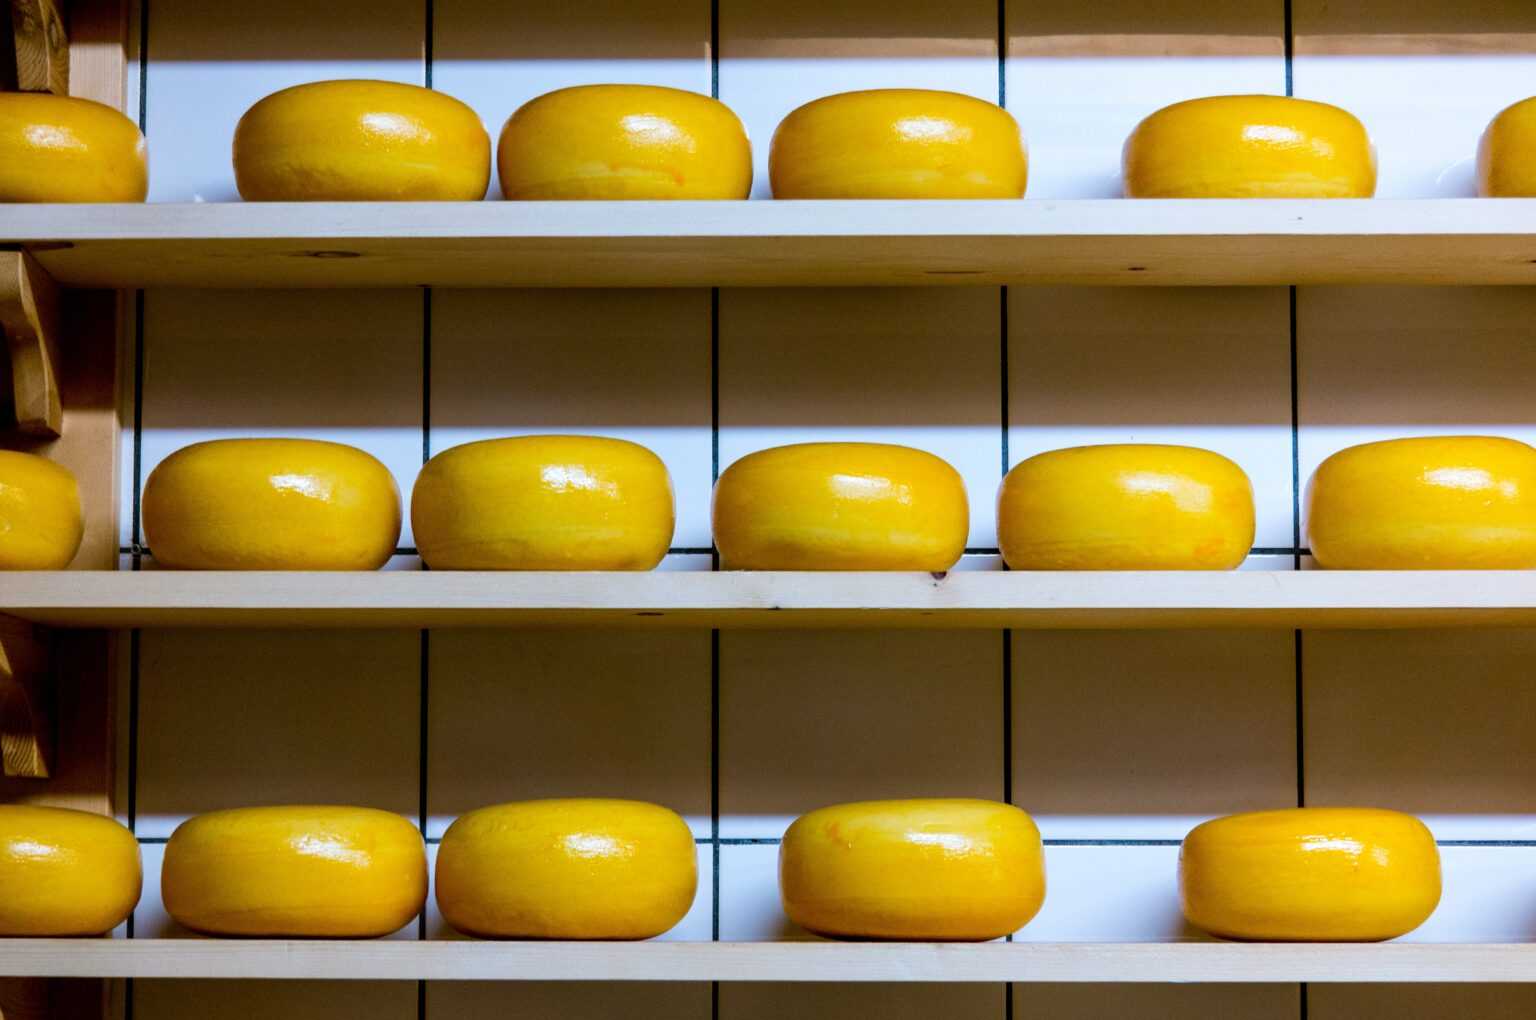 Cheese in a pantry